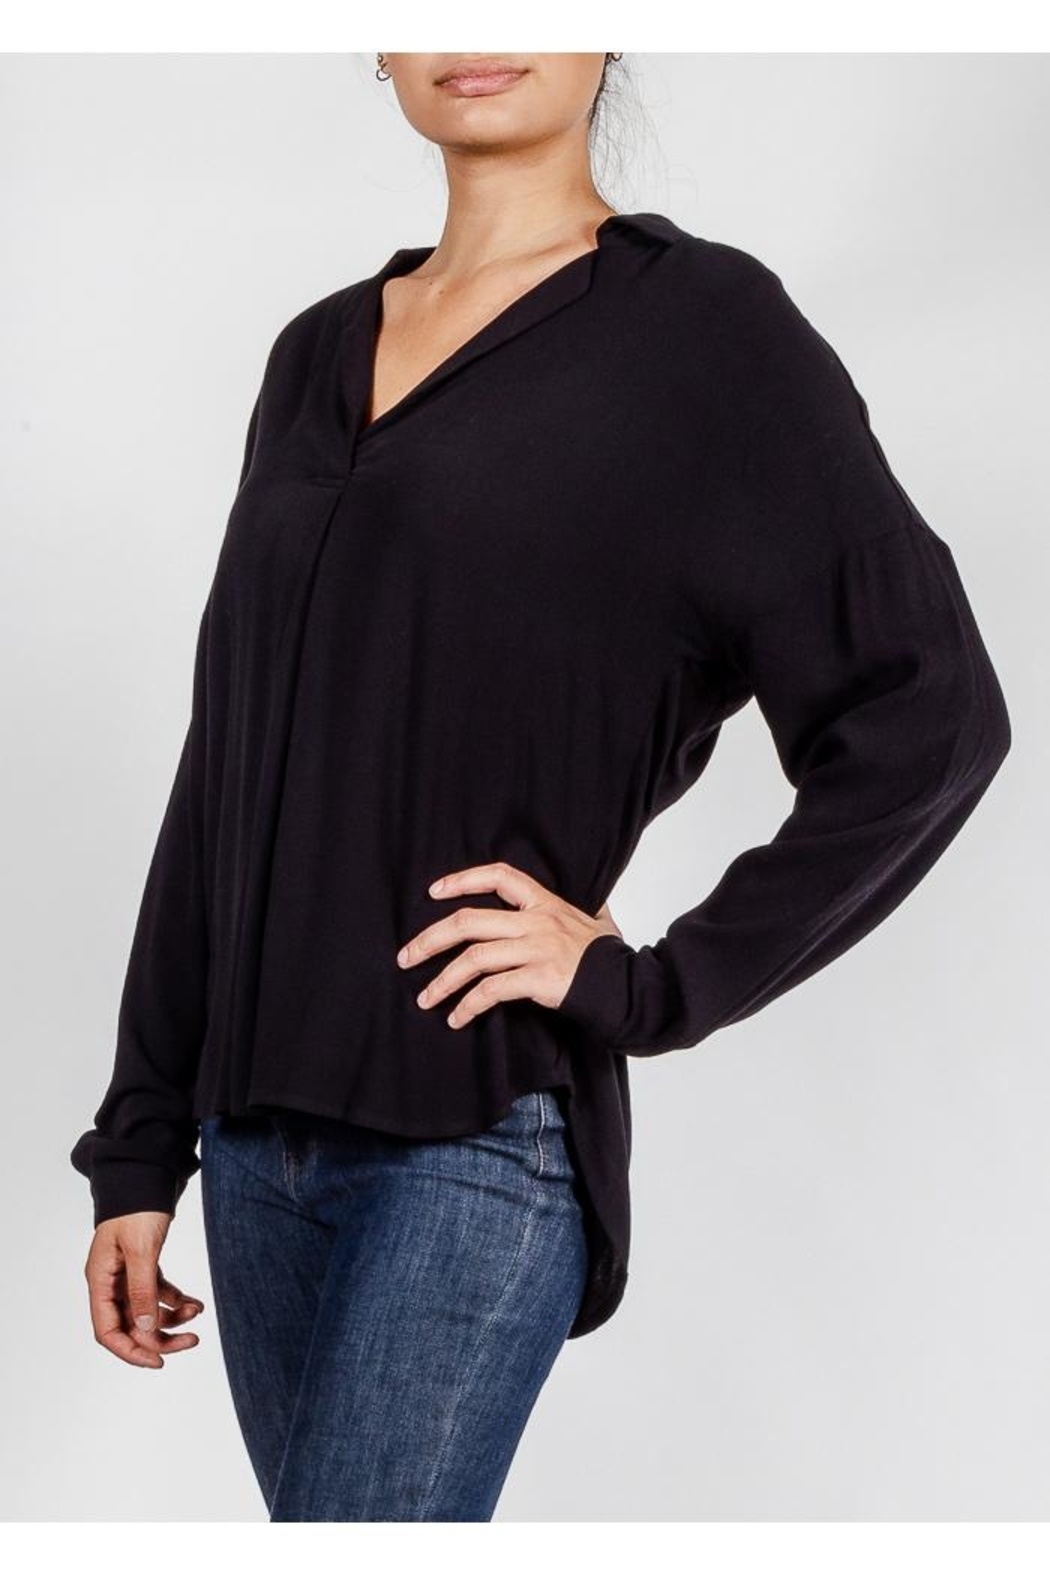 All In Favor Breezy Chic Blouse - Front Full Image